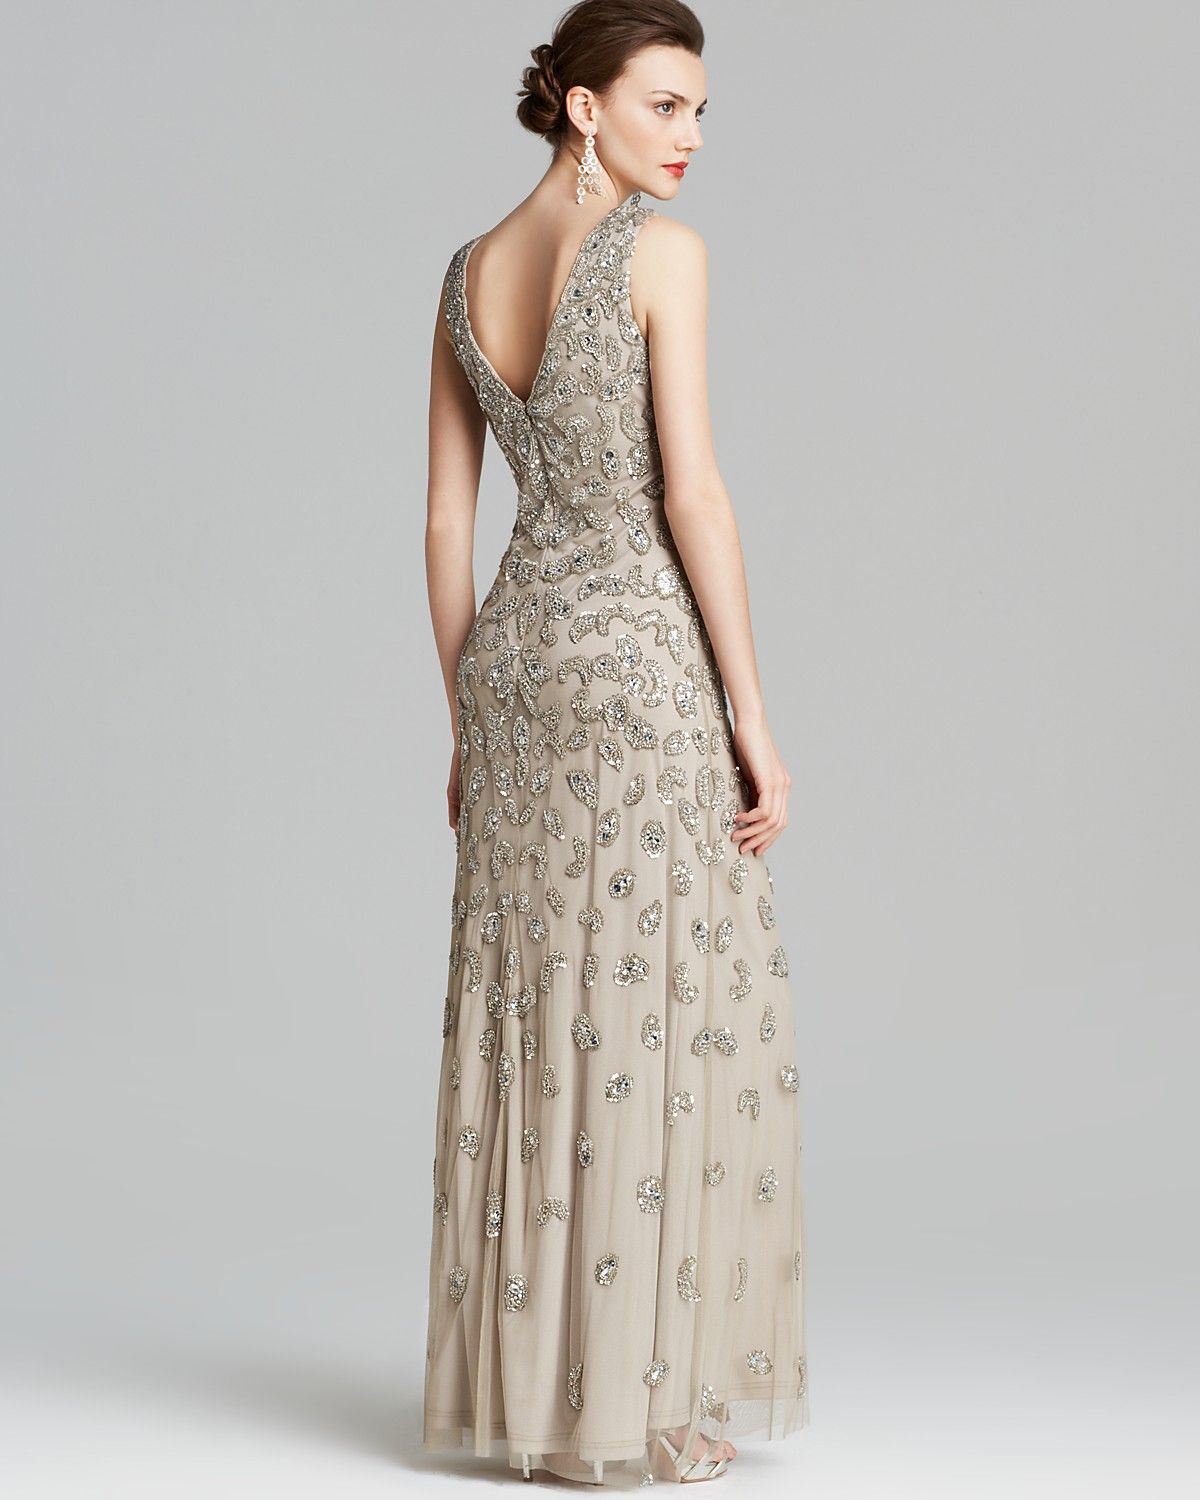 Aidan mattox gown sleeveless v neck beaded bloomingdales aidan mattox gown sleeveless v neck beaded bloomingdales ombrellifo Choice Image